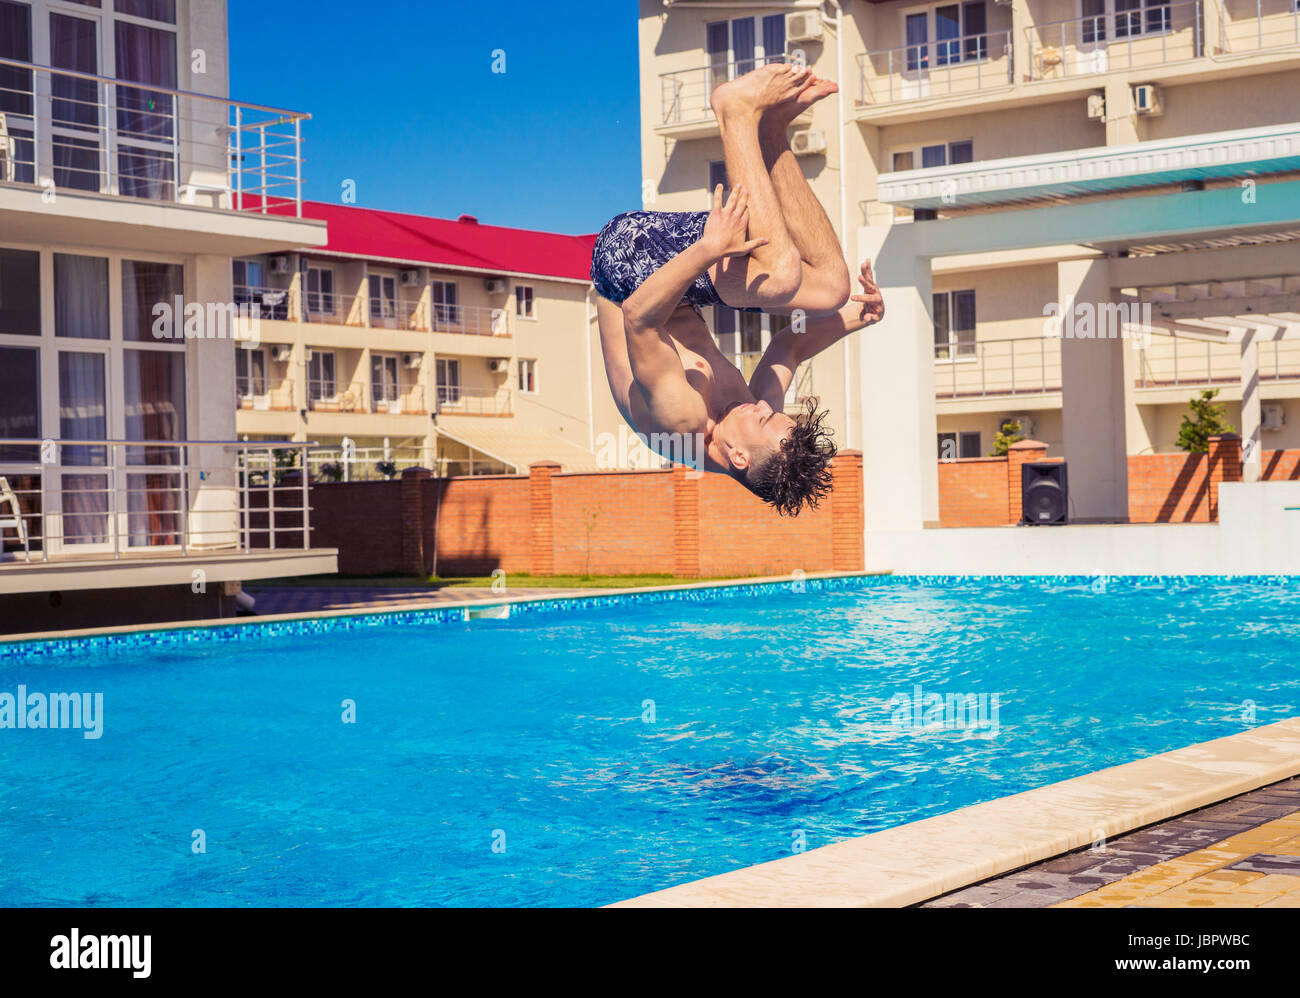 Man doing Somersaul or flip diving into swimming pool - Stock Image